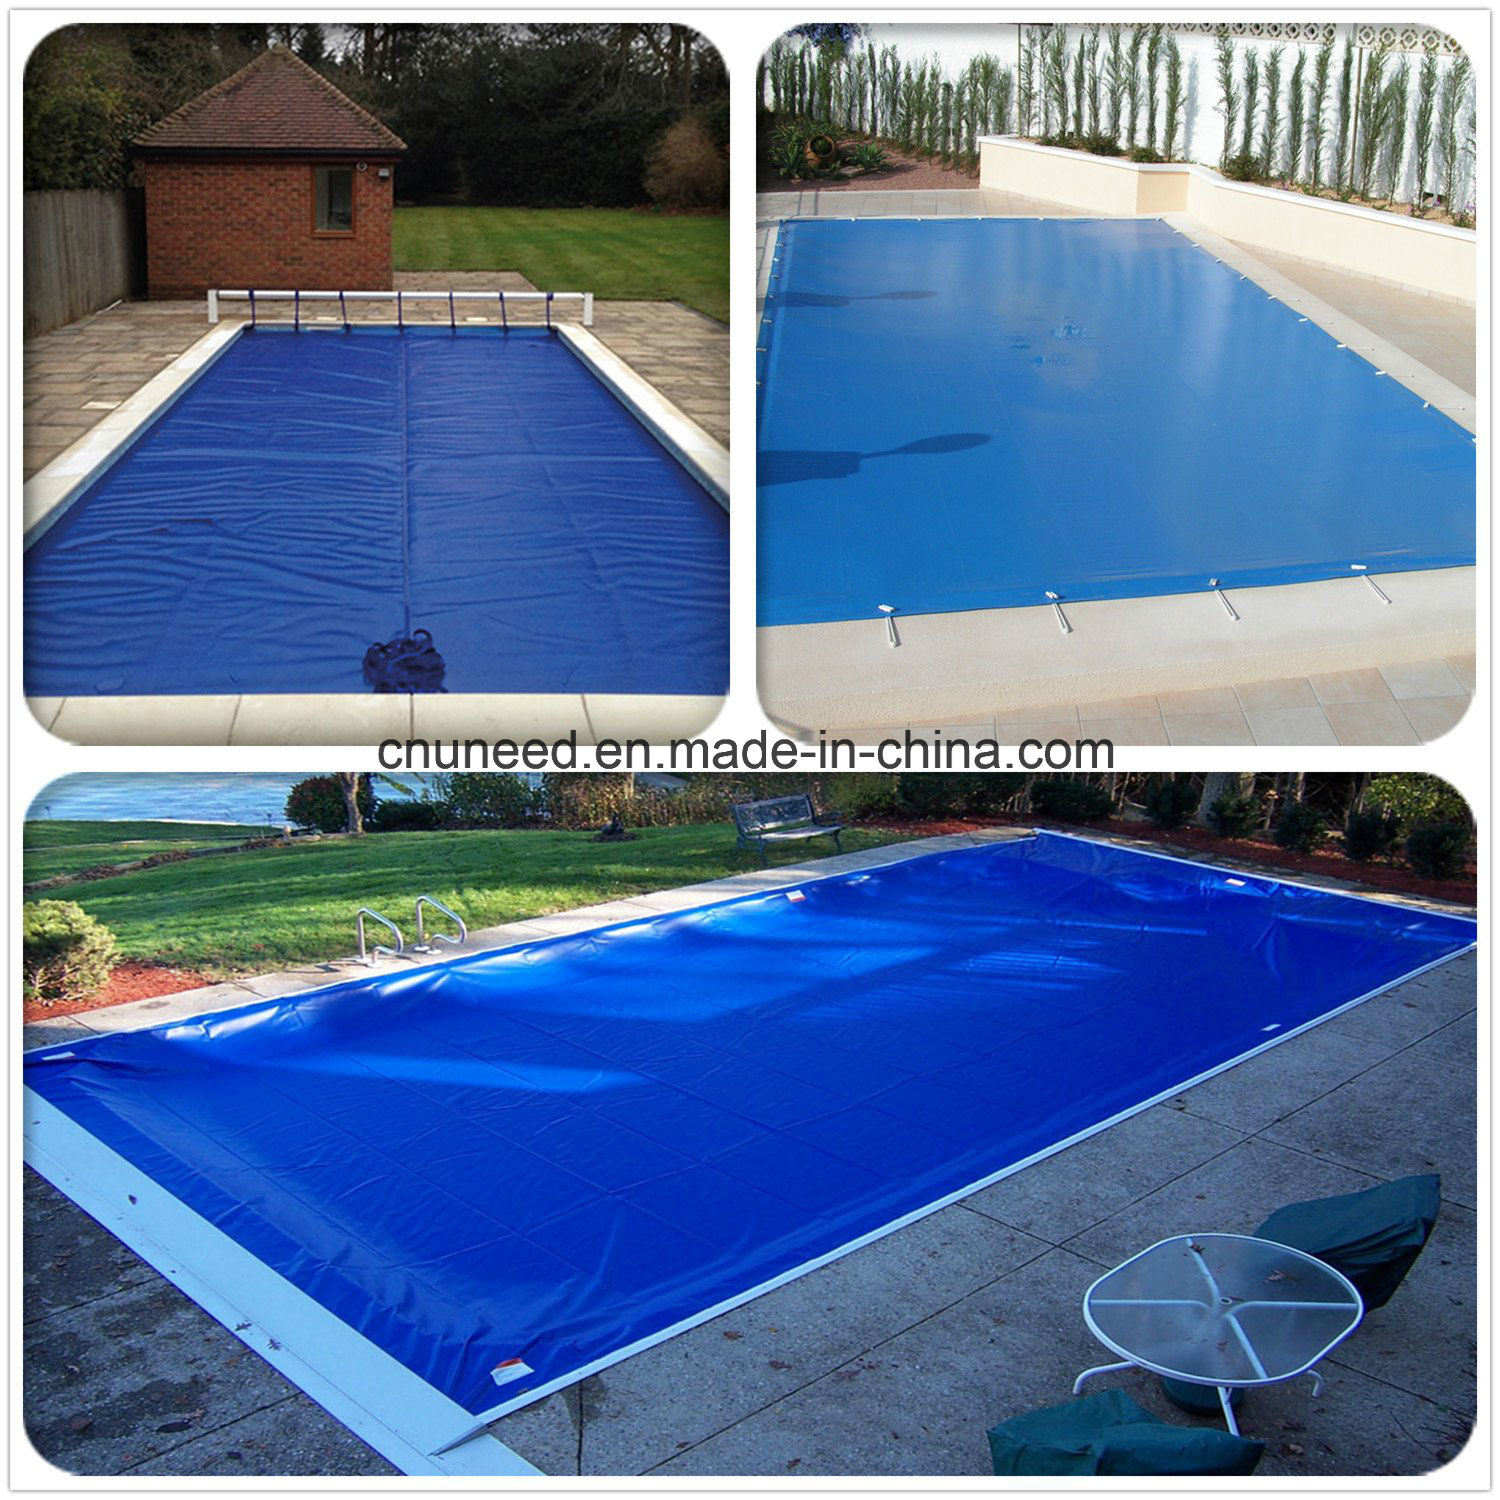 [Hot Item] in-Ground Pool Cover Reel, Sun Cover, Swimming Pool Covers